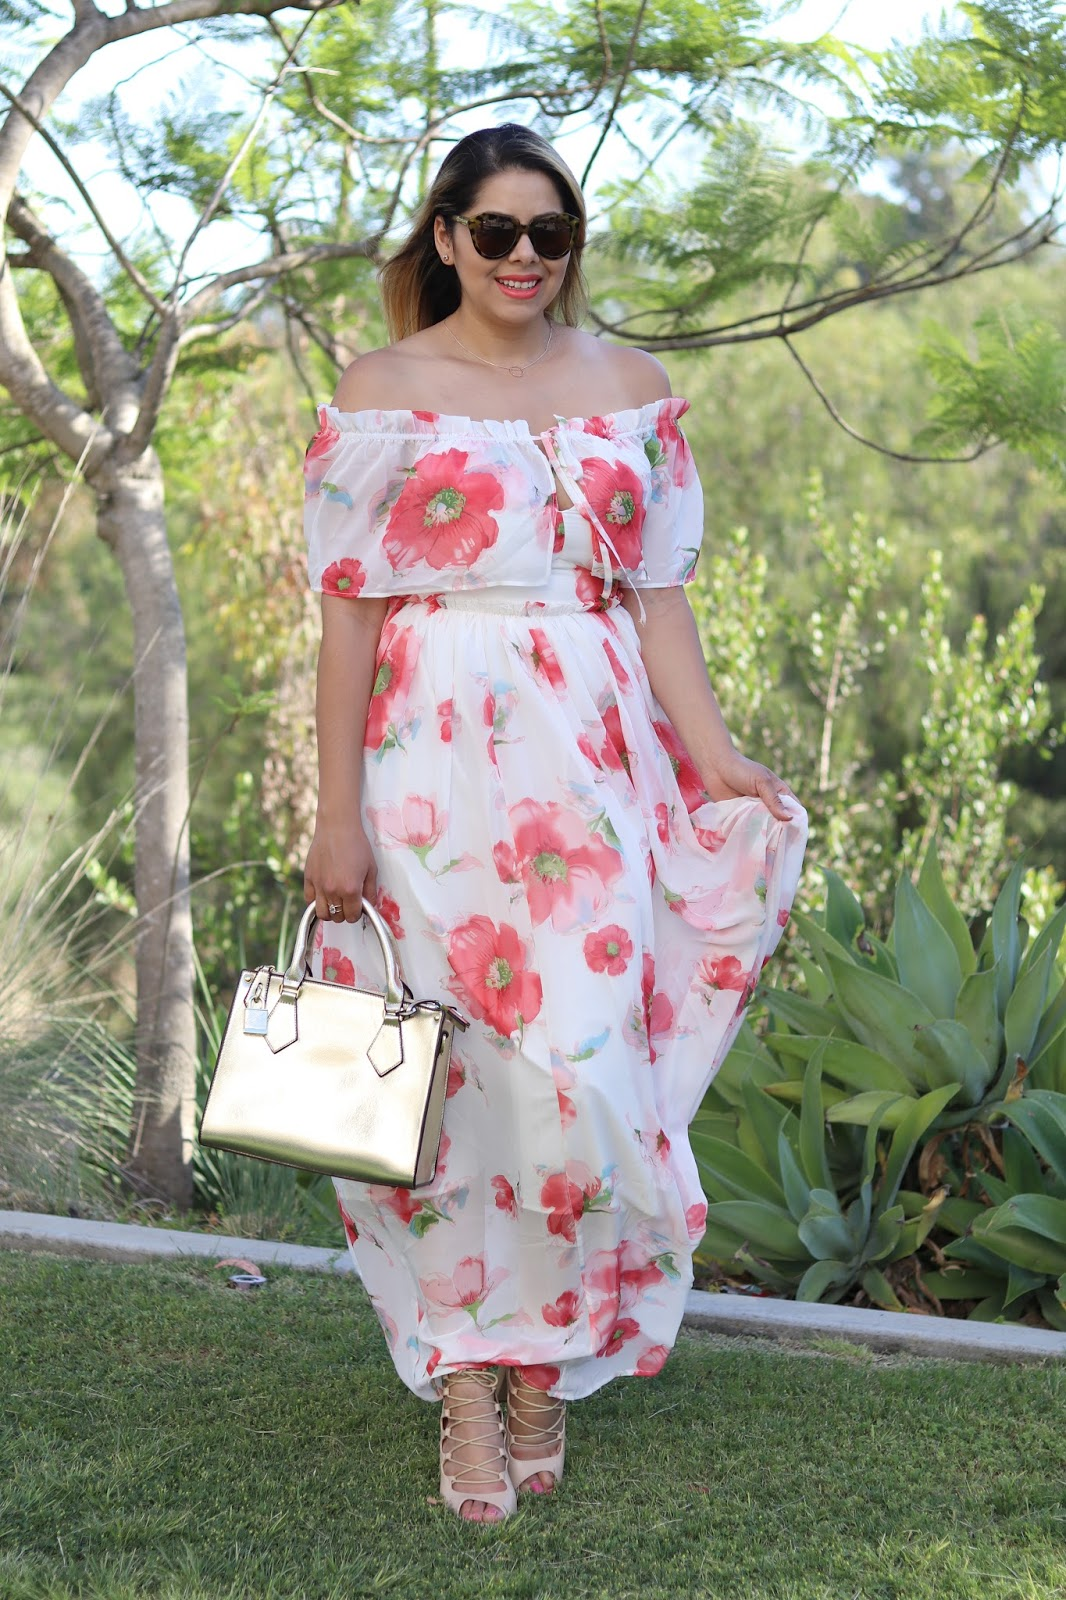 mexican fashion blogger, latina san diego blogger, karen walker sunglasses, chicwish blogger, what to wear this summer, summer brunch outfit